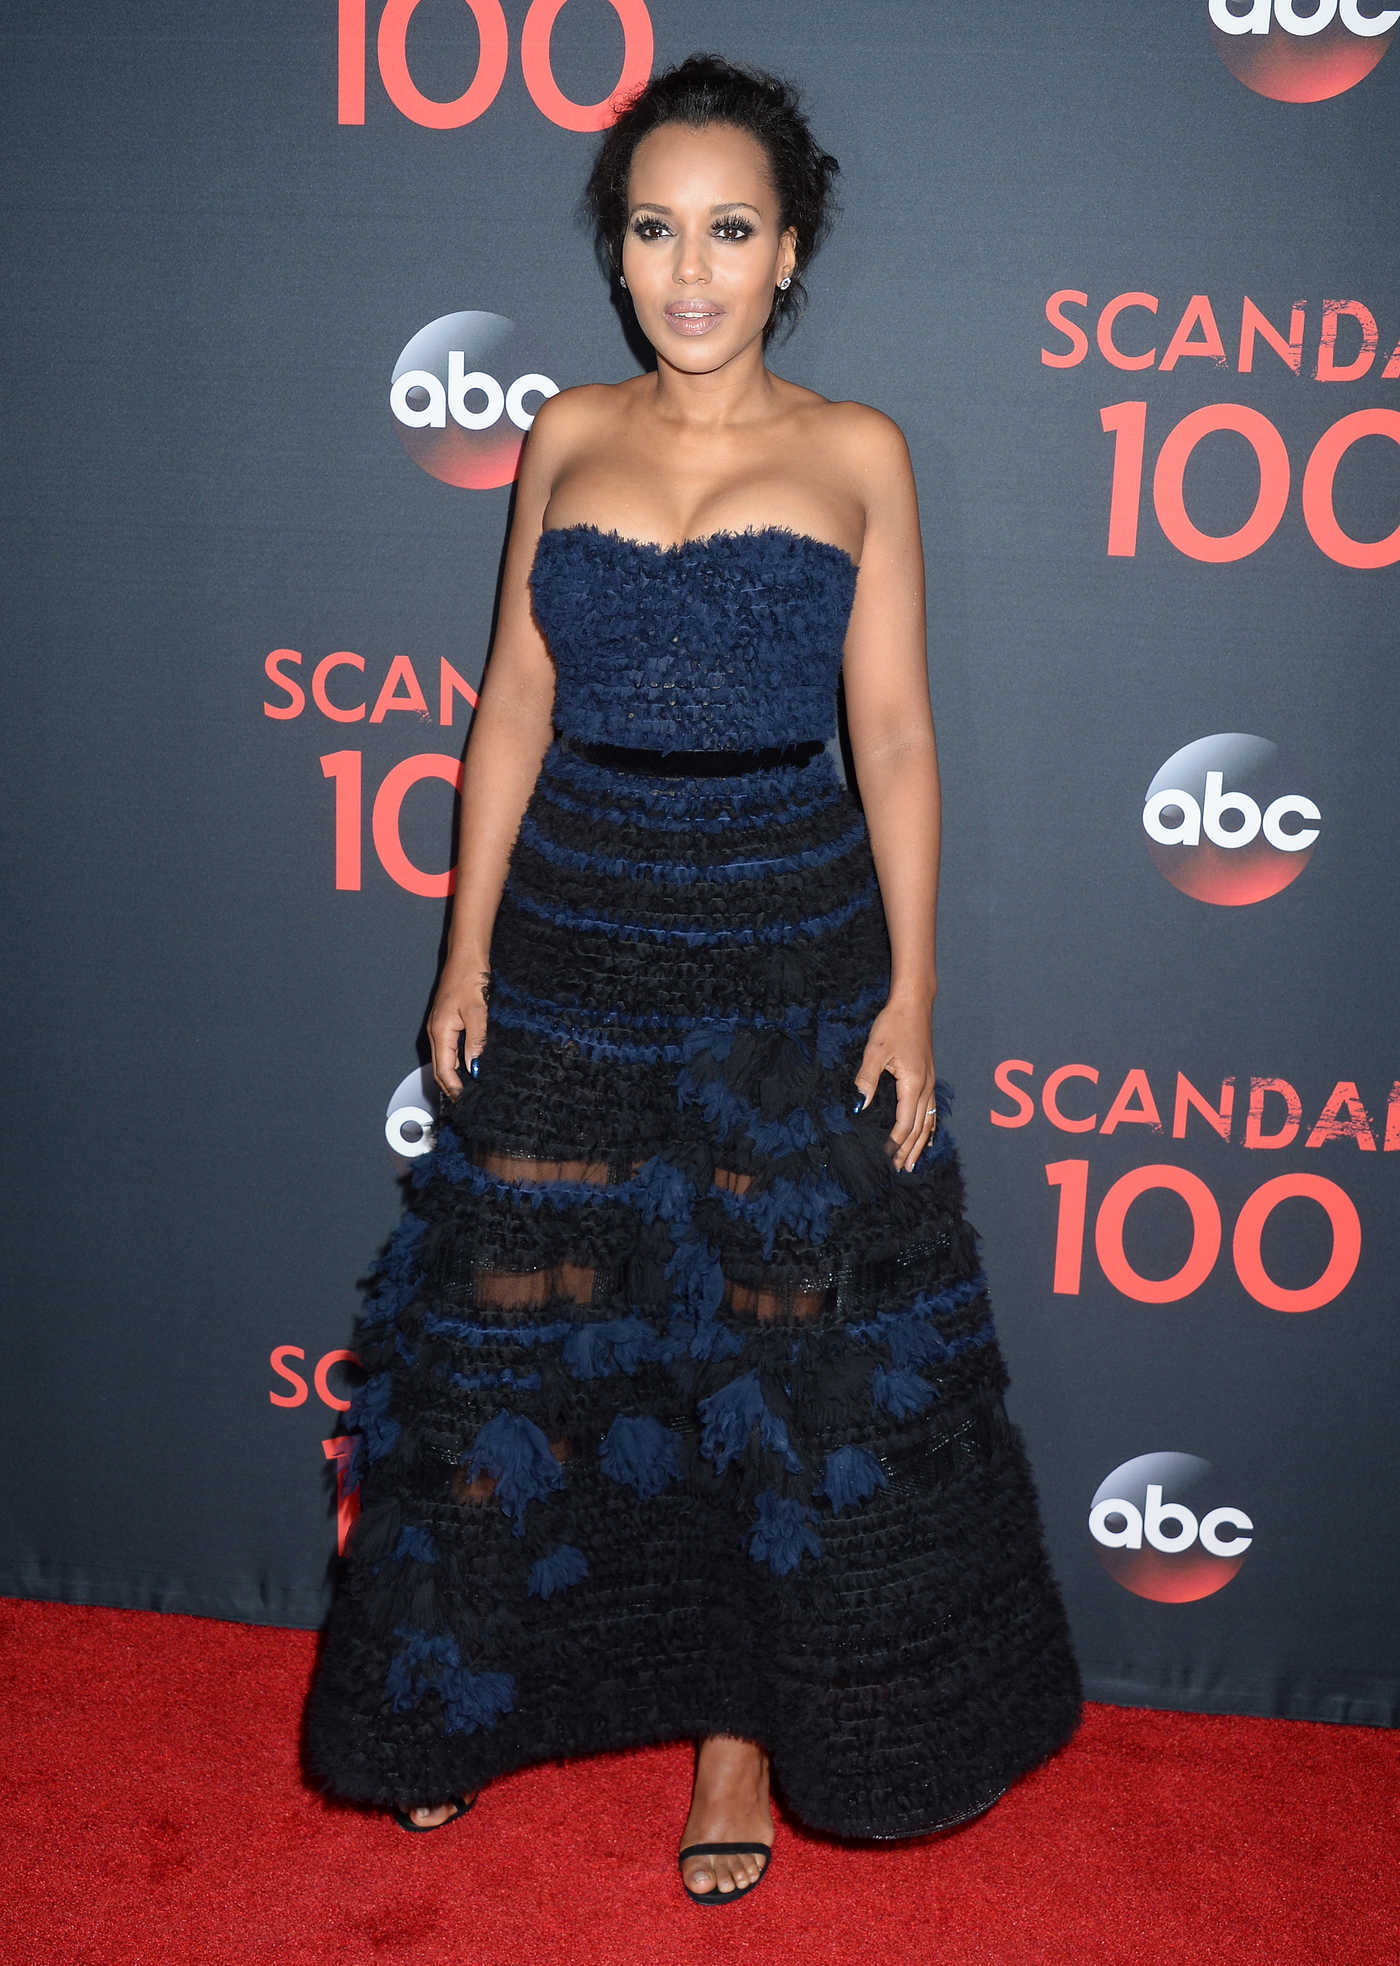 Kerry Washington at ABC's Scandal 100th Episode Celebration in West Hollywood 04/08/2017